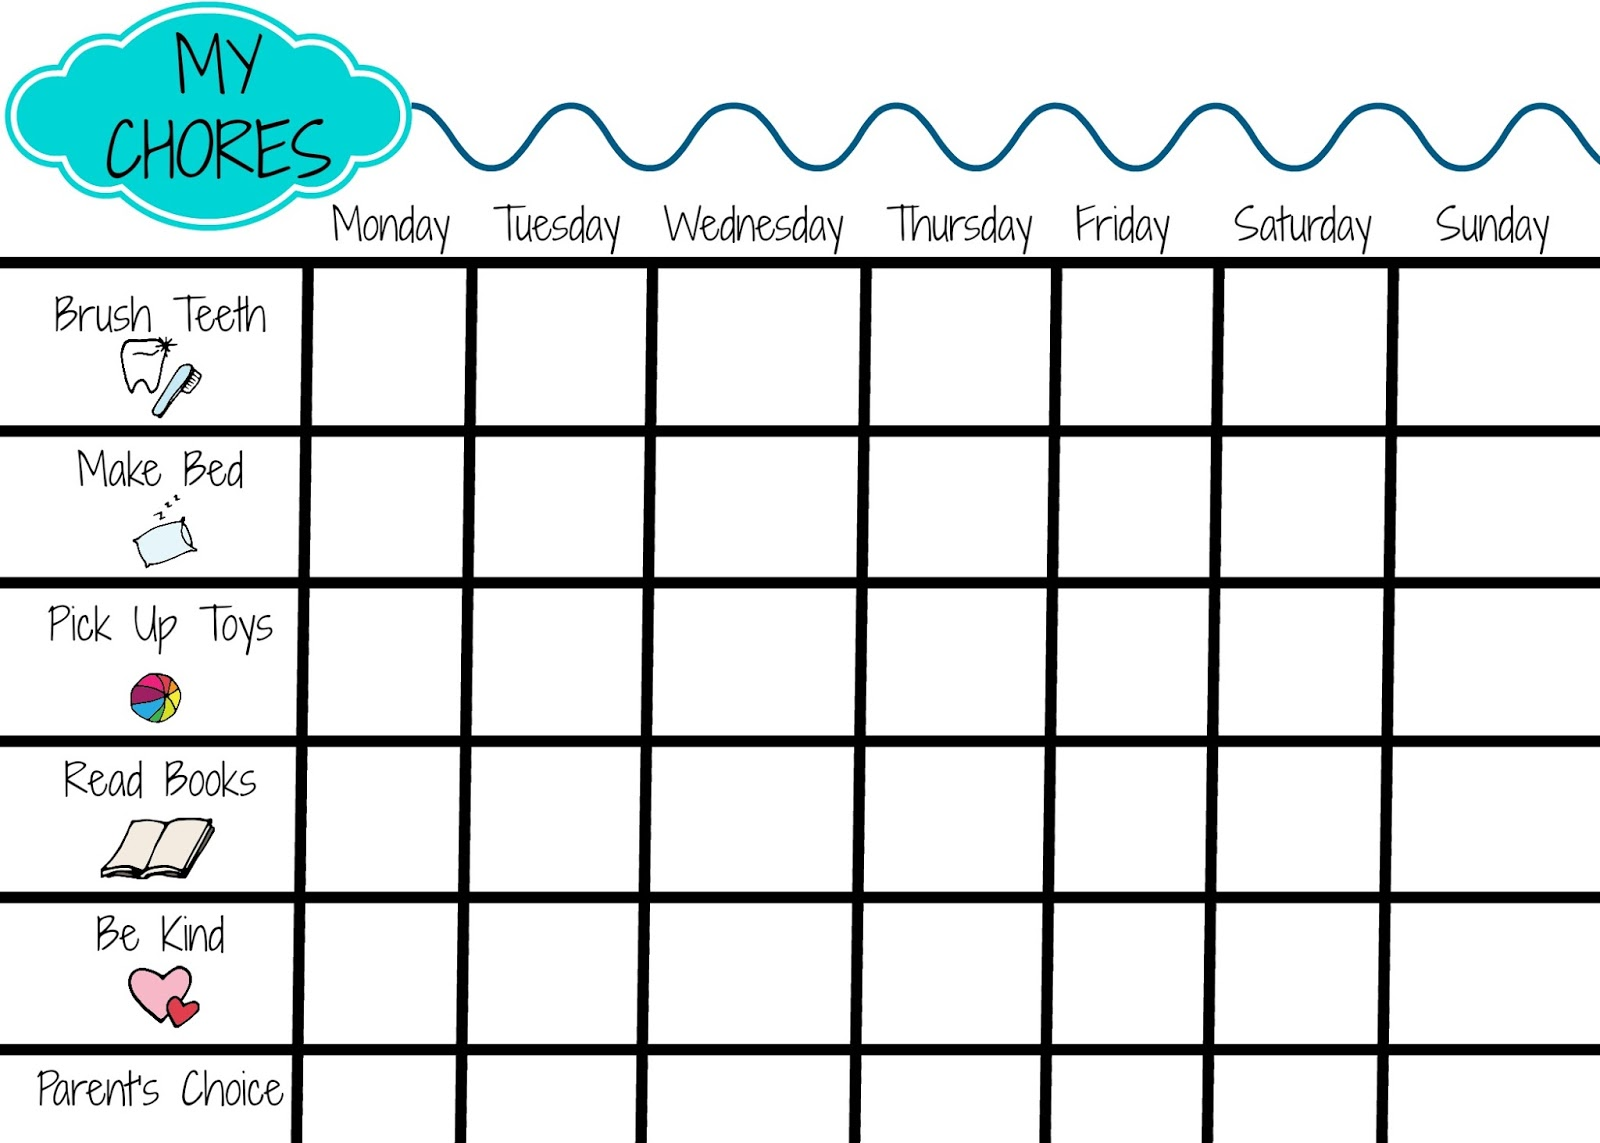 picture regarding Printable Chores Chart named Printable Chore Chart for Youngsters - The Chirping Mothers